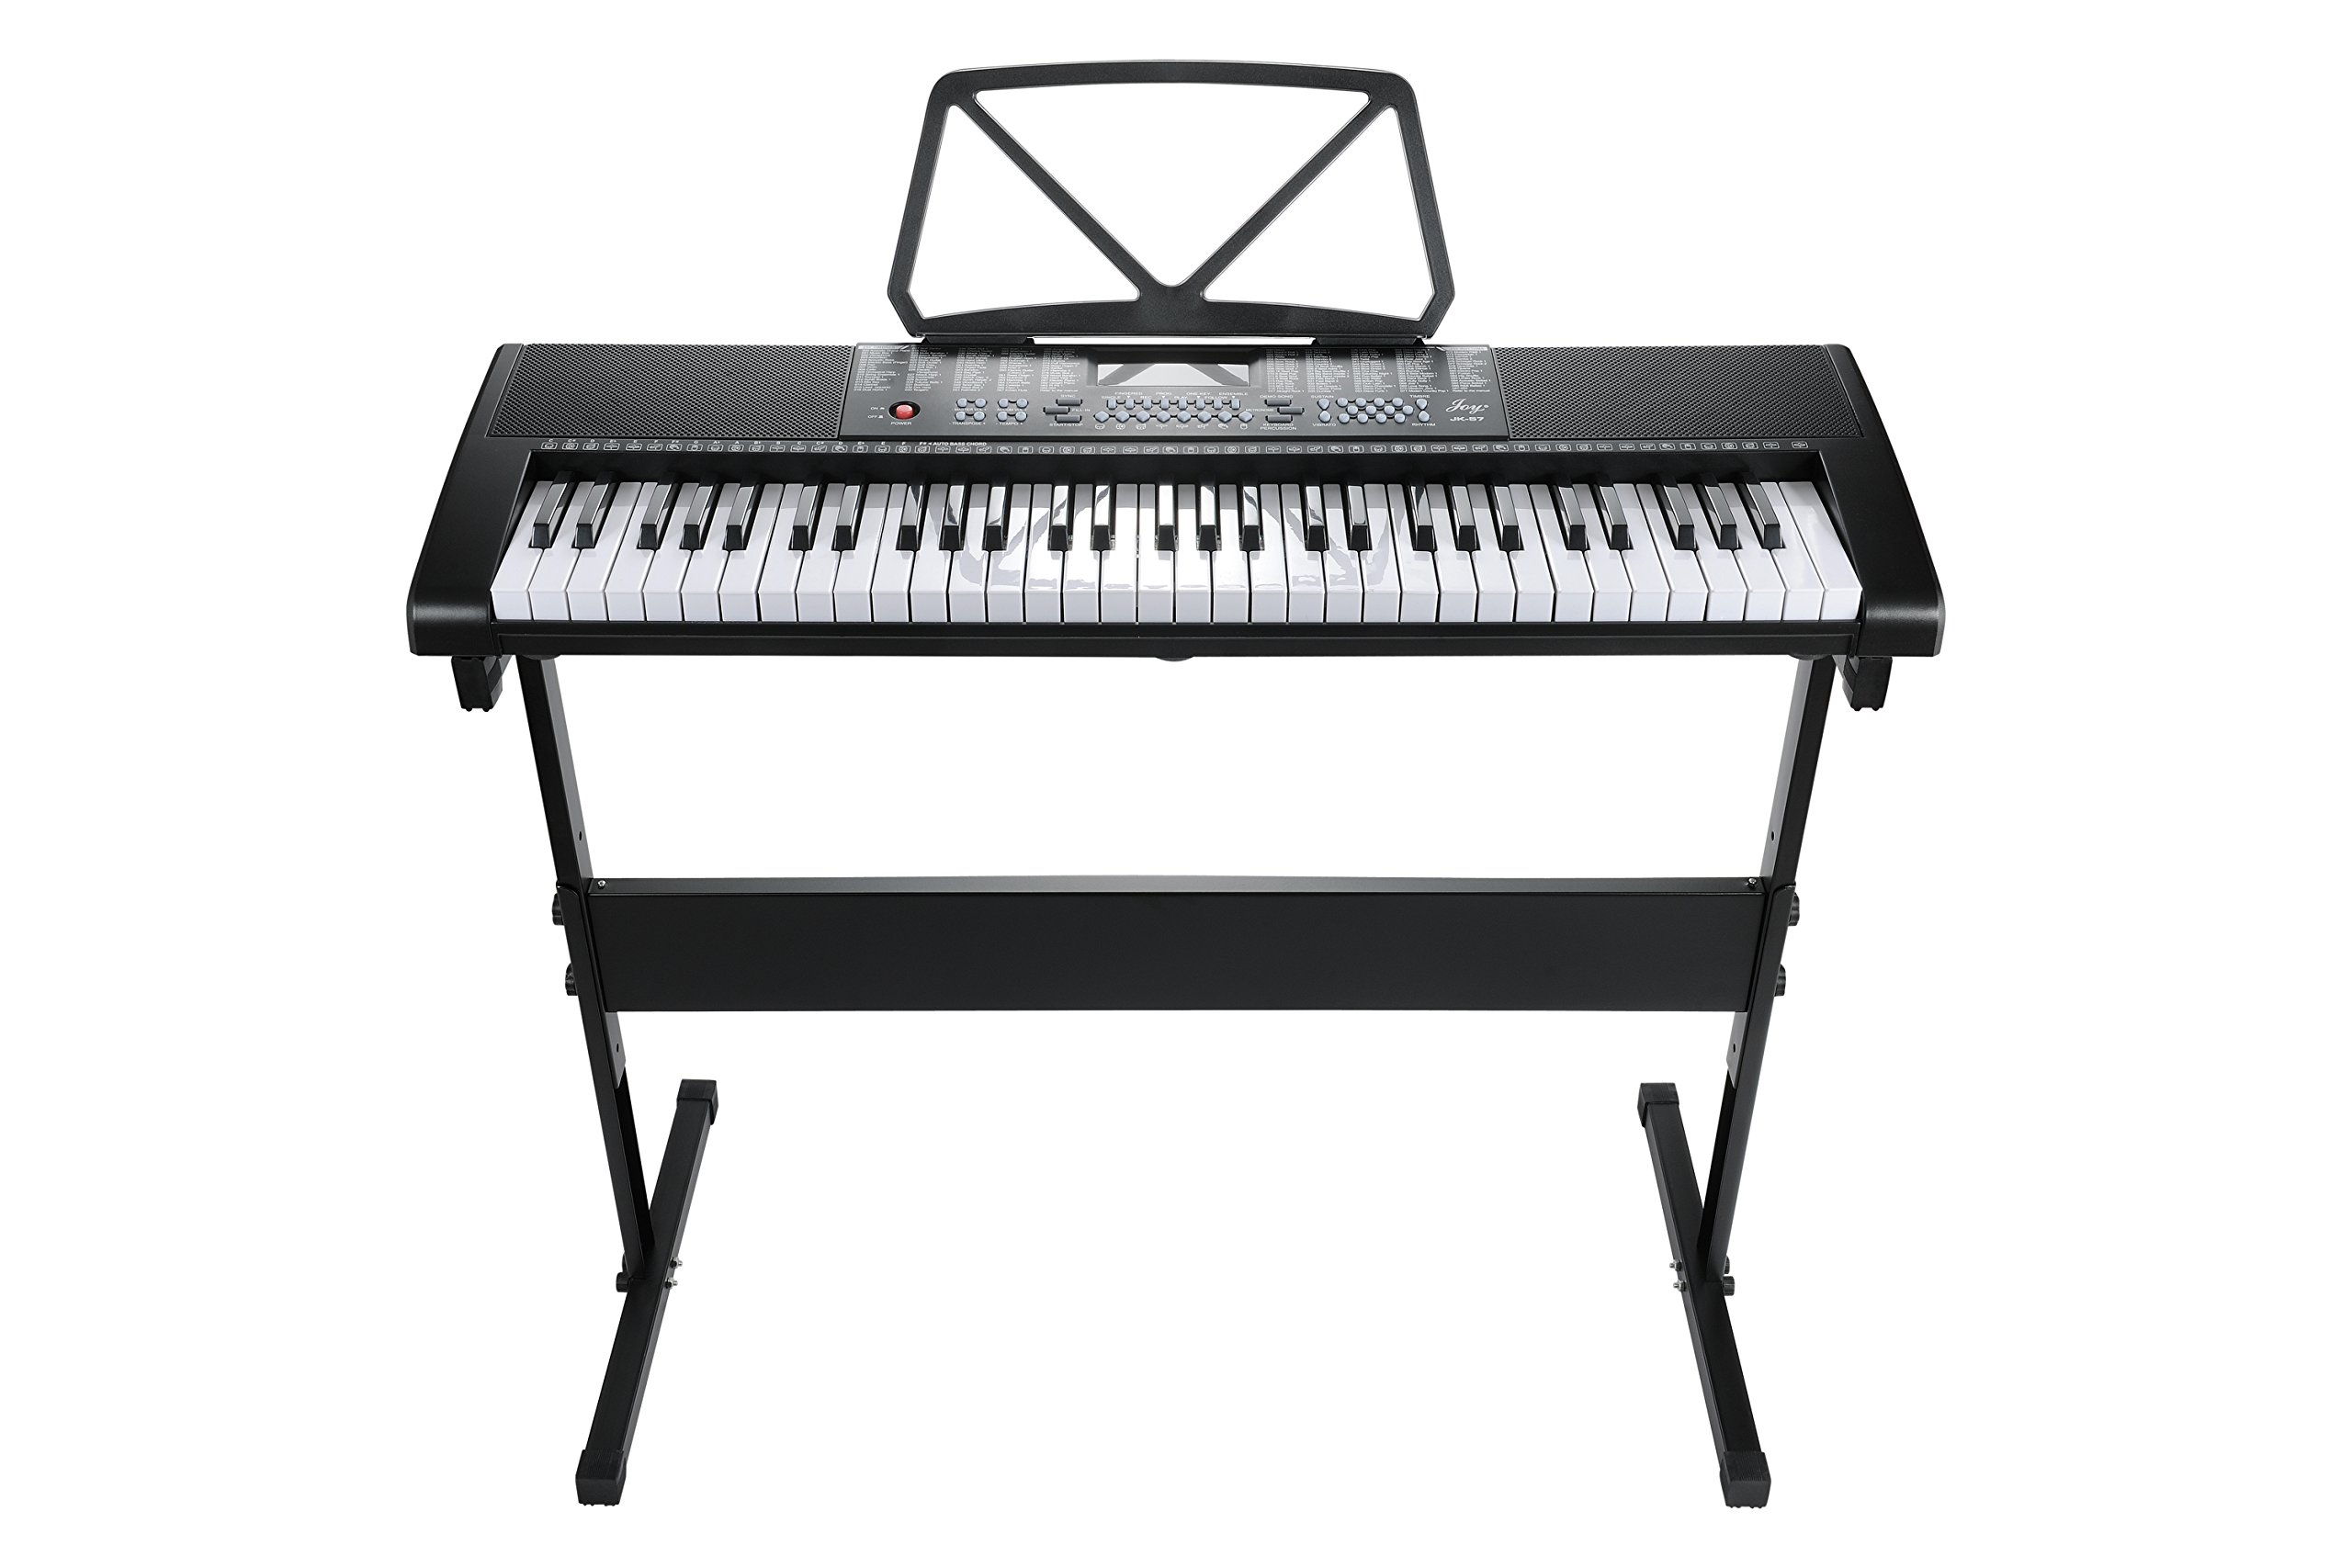 ELE-LIFE EL-57 Black 61-Key Digital Portable Keyboard Piano Electronic With Stand & Power Supply